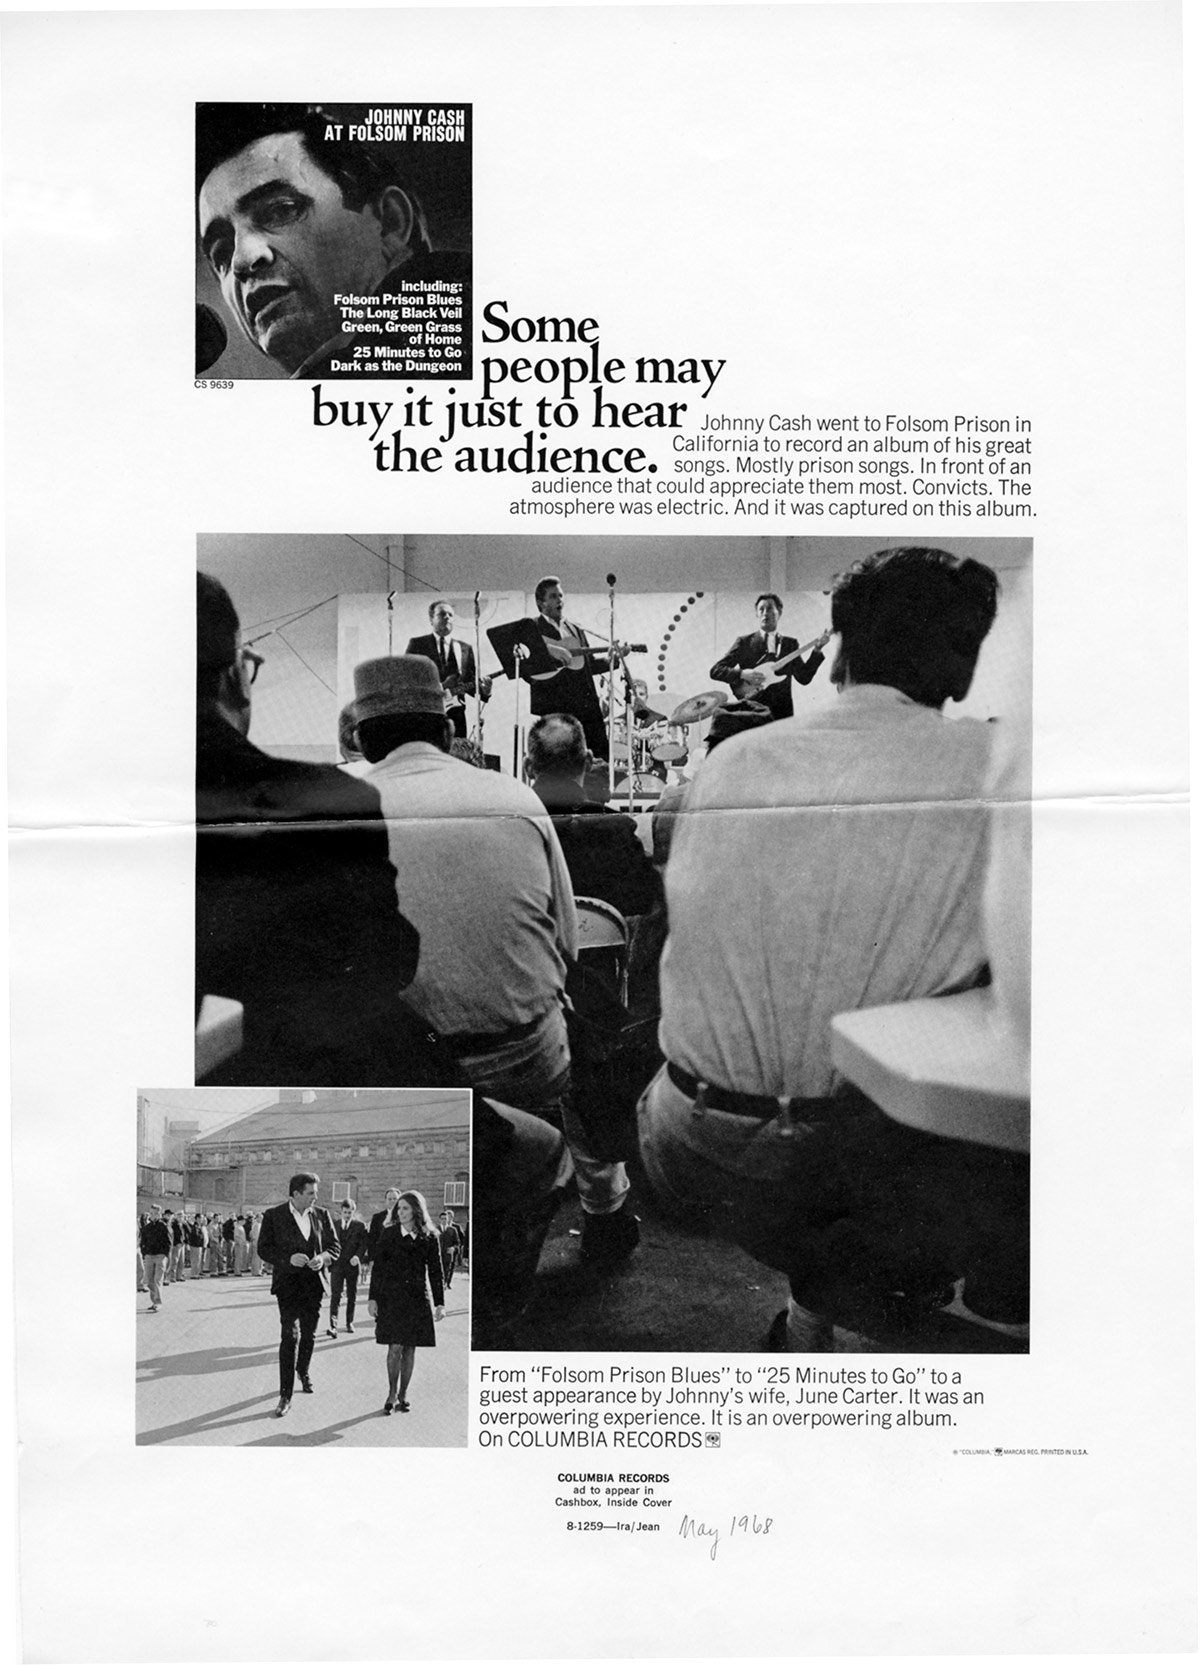 Johnny Cash 'At Folsom Prison' advertisement in Cashbox magazine in May 1968